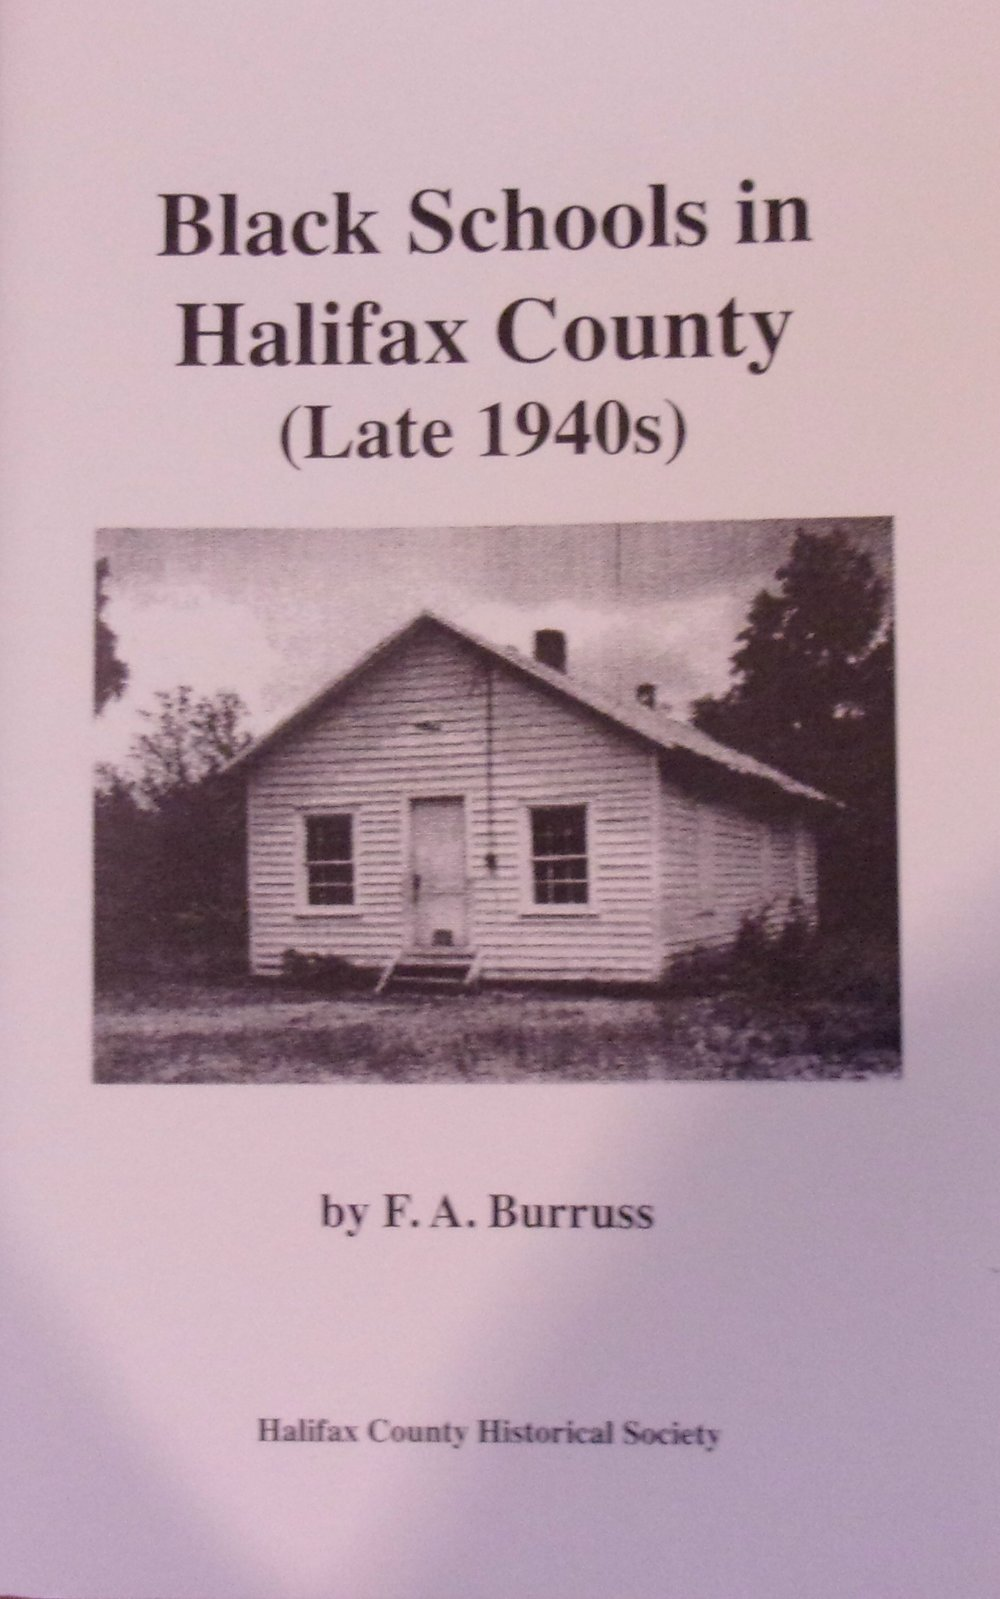 Black Schools in Halifax County (Late 1940s).jpg